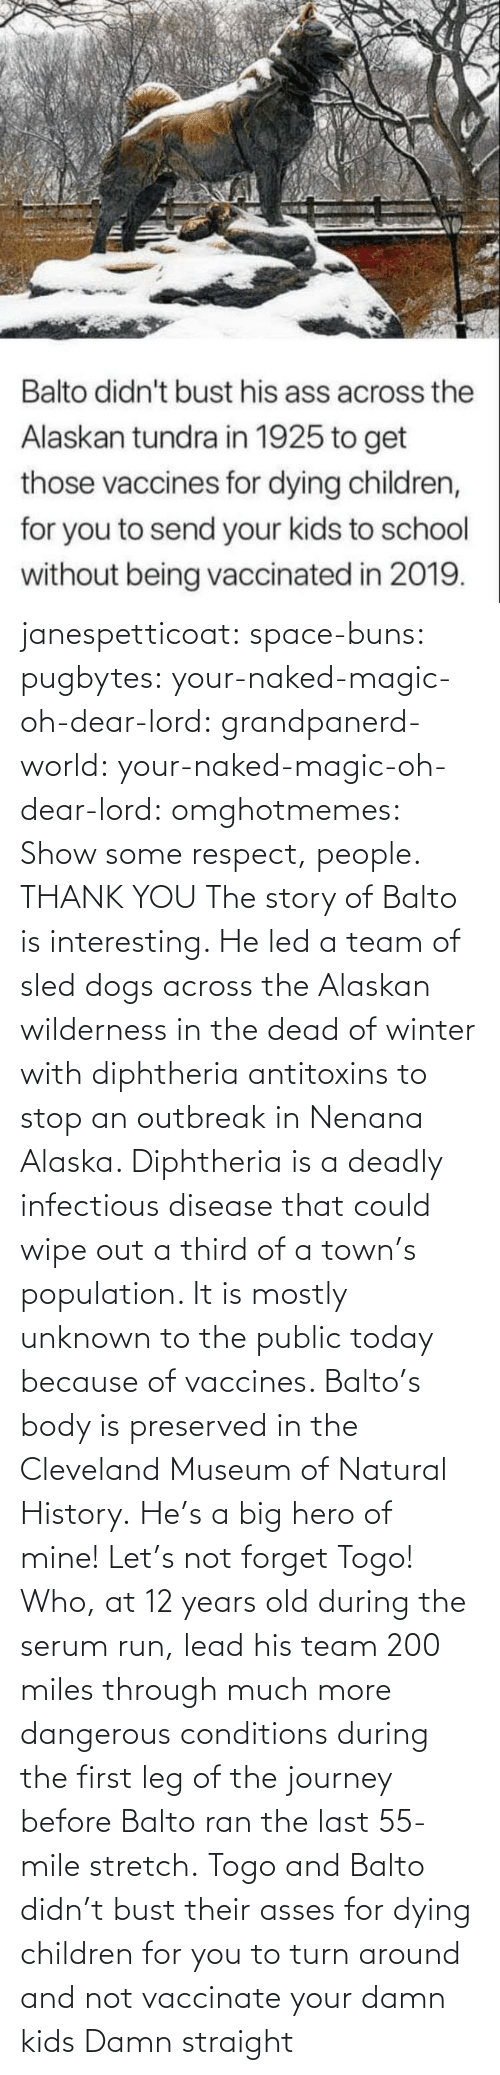 Alaska: janespetticoat: space-buns:  pugbytes:   your-naked-magic-oh-dear-lord:  grandpanerd-world:   your-naked-magic-oh-dear-lord:  omghotmemes: Show some respect, people.  THANK YOU   The story of Balto is interesting. He led a team of sled dogs across the Alaskan wilderness in the dead of winter with diphtheria antitoxins to stop an outbreak in Nenana Alaska. Diphtheria is a deadly infectious disease that could wipe out a third of a town's population. It is mostly unknown to the public today because of vaccines. Balto's body is preserved in the Cleveland Museum of Natural History.   He's a big hero of mine!   Let's not forget Togo! Who, at 12 years old during the serum run, lead his team 200 miles through much more dangerous conditions during the first leg of the journey before Balto ran the last 55-mile stretch.   Togo and Balto didn't bust their asses for dying children for you to turn around and not vaccinate your damn kids    Damn straight